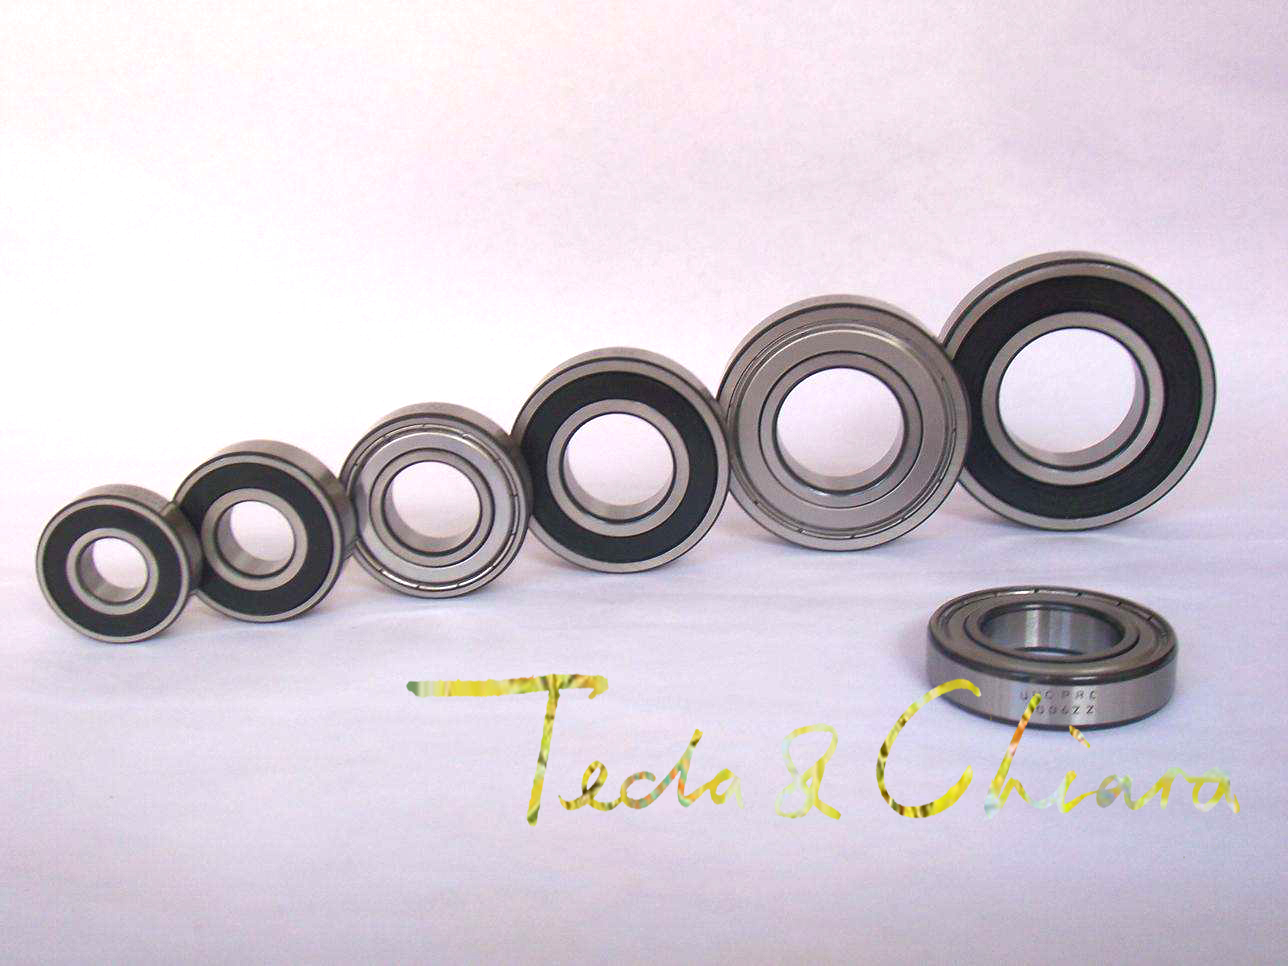 696 696ZZ 696RS 696-2Z 696Z 696-2RS ZZ RS RZ 2RZ Deep Groove Ball Bearings 6 x 15 x 5mm High Quality 6700 6700zz 6700rs 6700 2z 6700z 6700 2rs zz rs rz 2rz deep groove ball bearings 10 x 15 x 4mm high quality